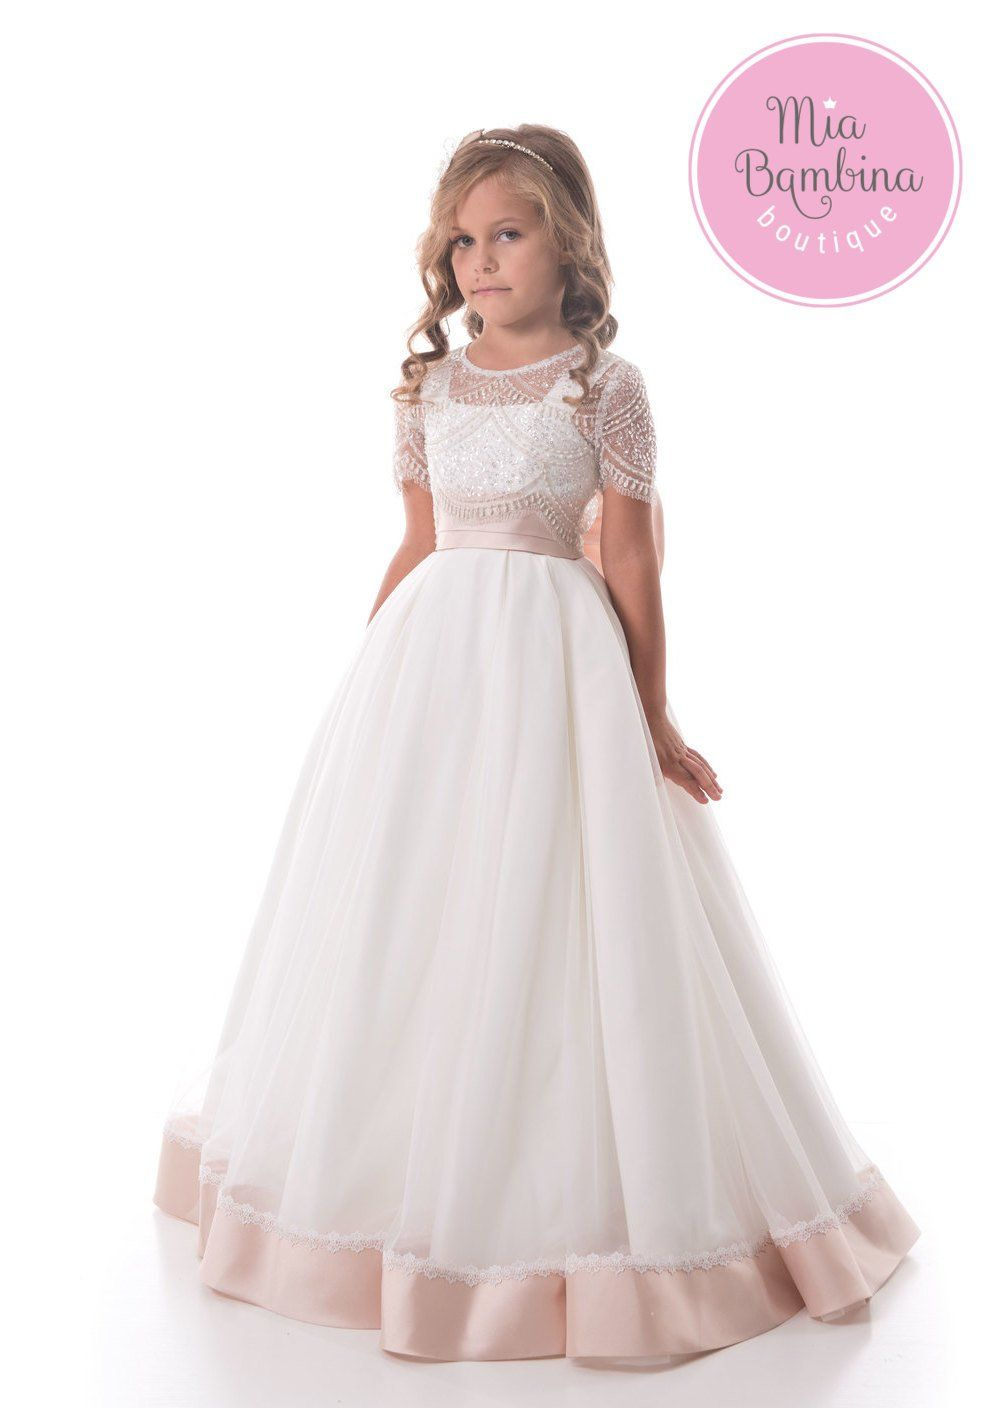 c64b5caab4f A beautiful princess dress for flower girls from 3 year to 14 years old.  The tulle lace gown features a lace overlay bodice